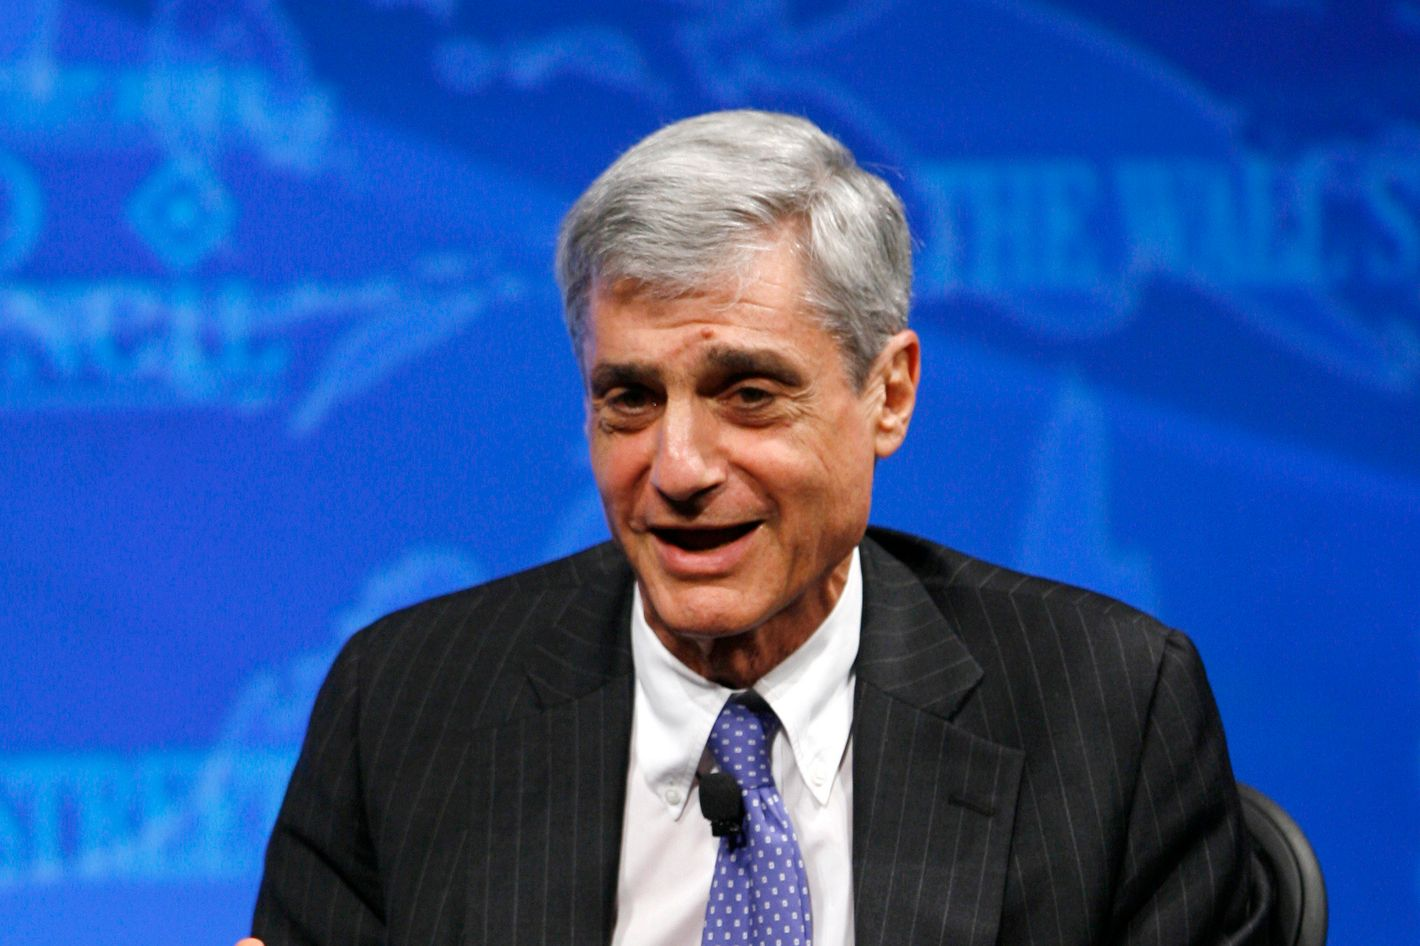 Former U.S. Treasury Secretary Robert Rubin speaks at a forum about the global economy at the Wall St. Journal's CEO Council in Washington November 17, 2008. Also speaking on the panel were current Treasury Secretary Henry Paulson and former Treasury Secretary Larry Summers.